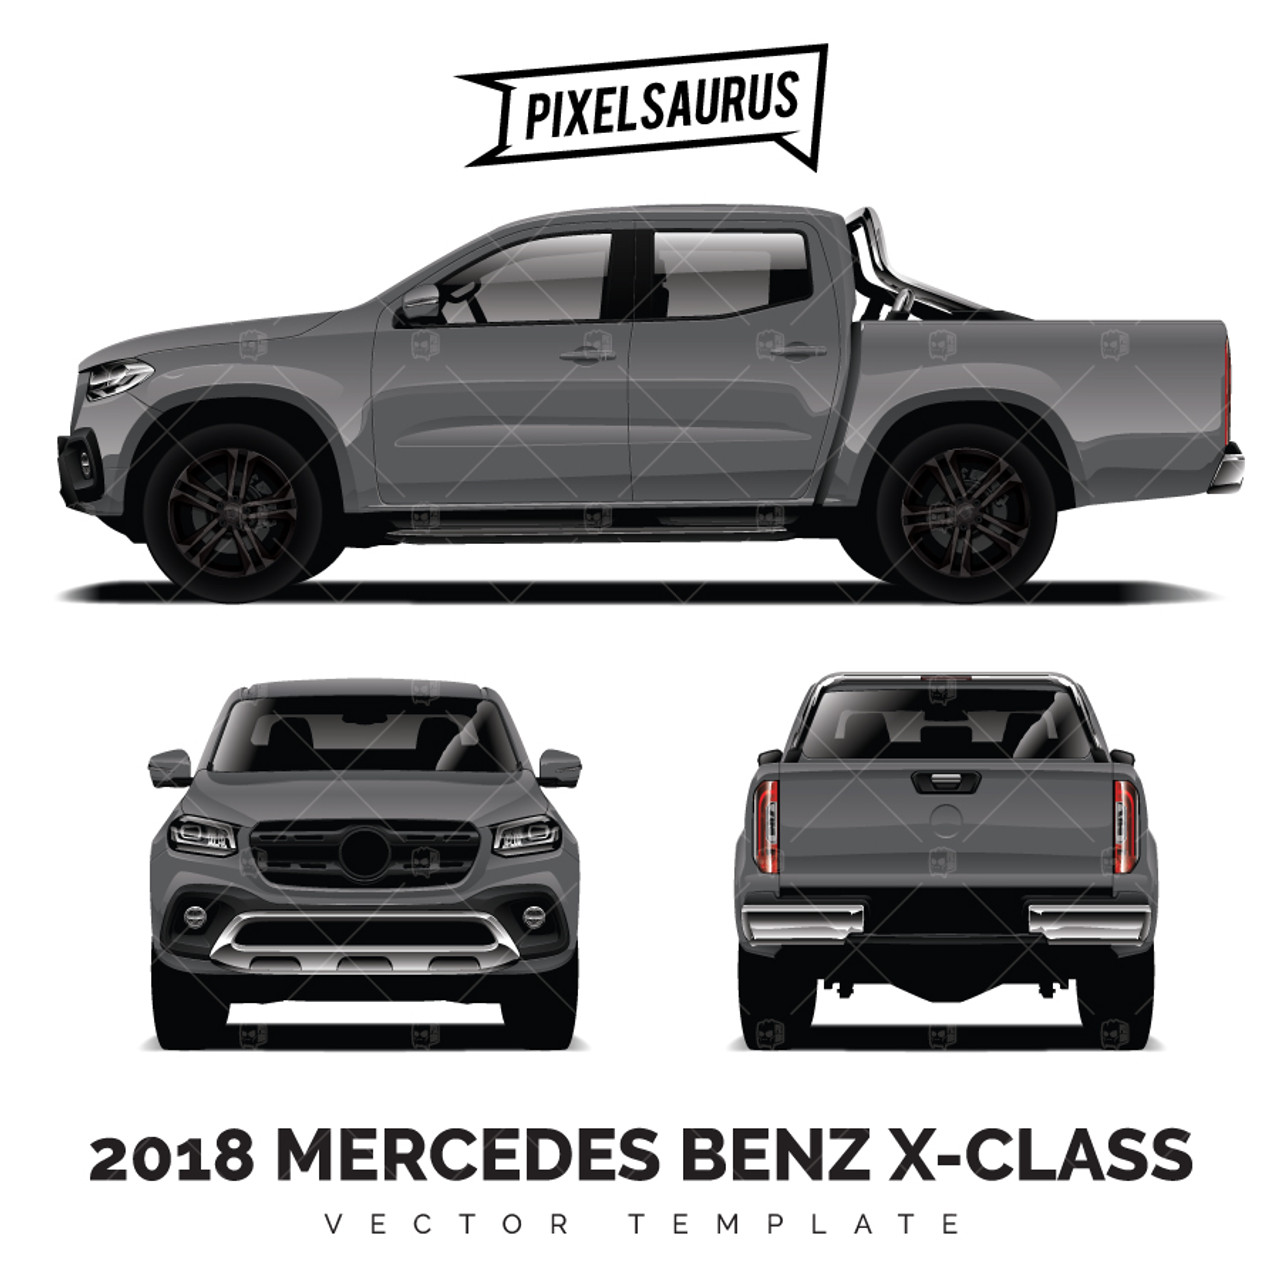 2018 Mercedes Benz X-Class Vector Template